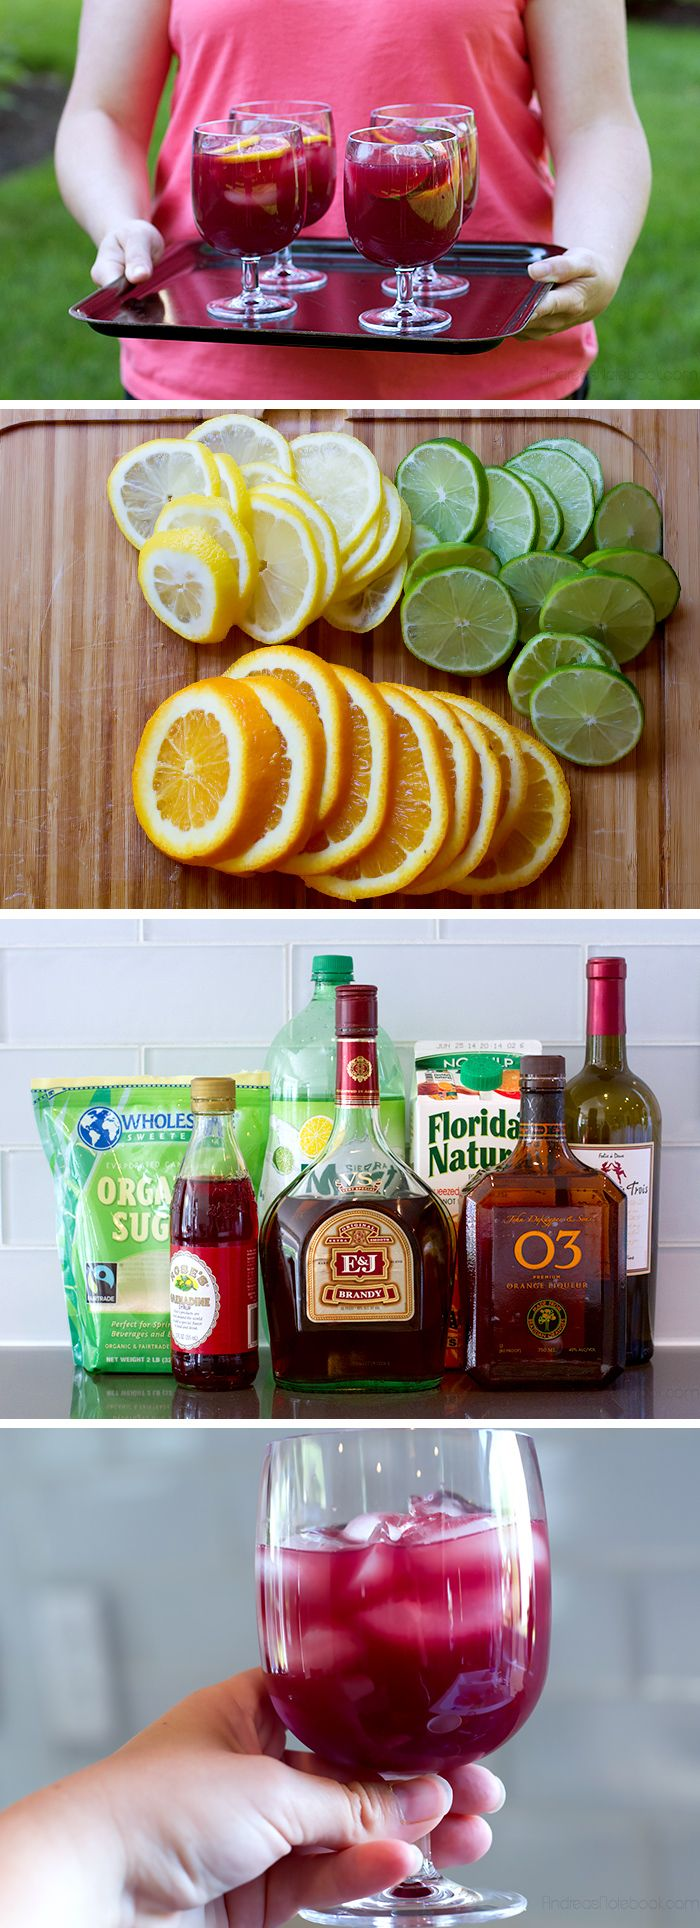 wallet with zipper mens Sangria is the best drink for summer backyard gatherings  This sangria recipe is always a hit with friends  This is not a simple sangria recipe  There are lots of ingredients but trust me  you want to try this  Once you  ve invested in the ingredients you can make it all summer long  The perfect excuse to